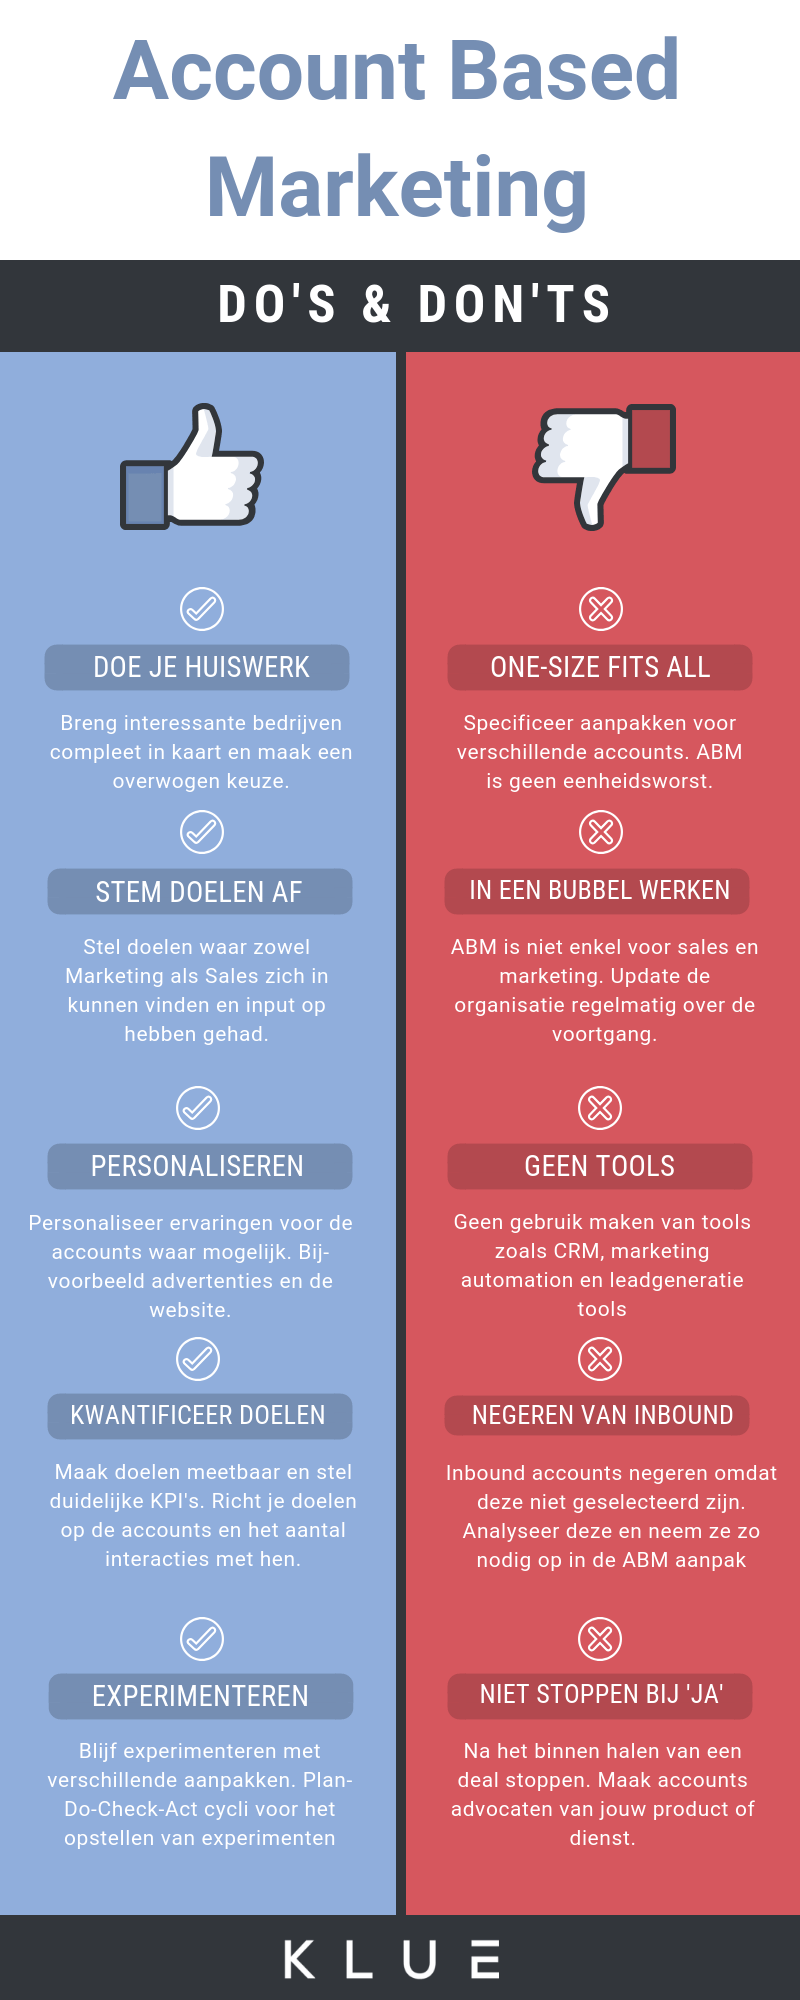 do's en don'ts account based marketing